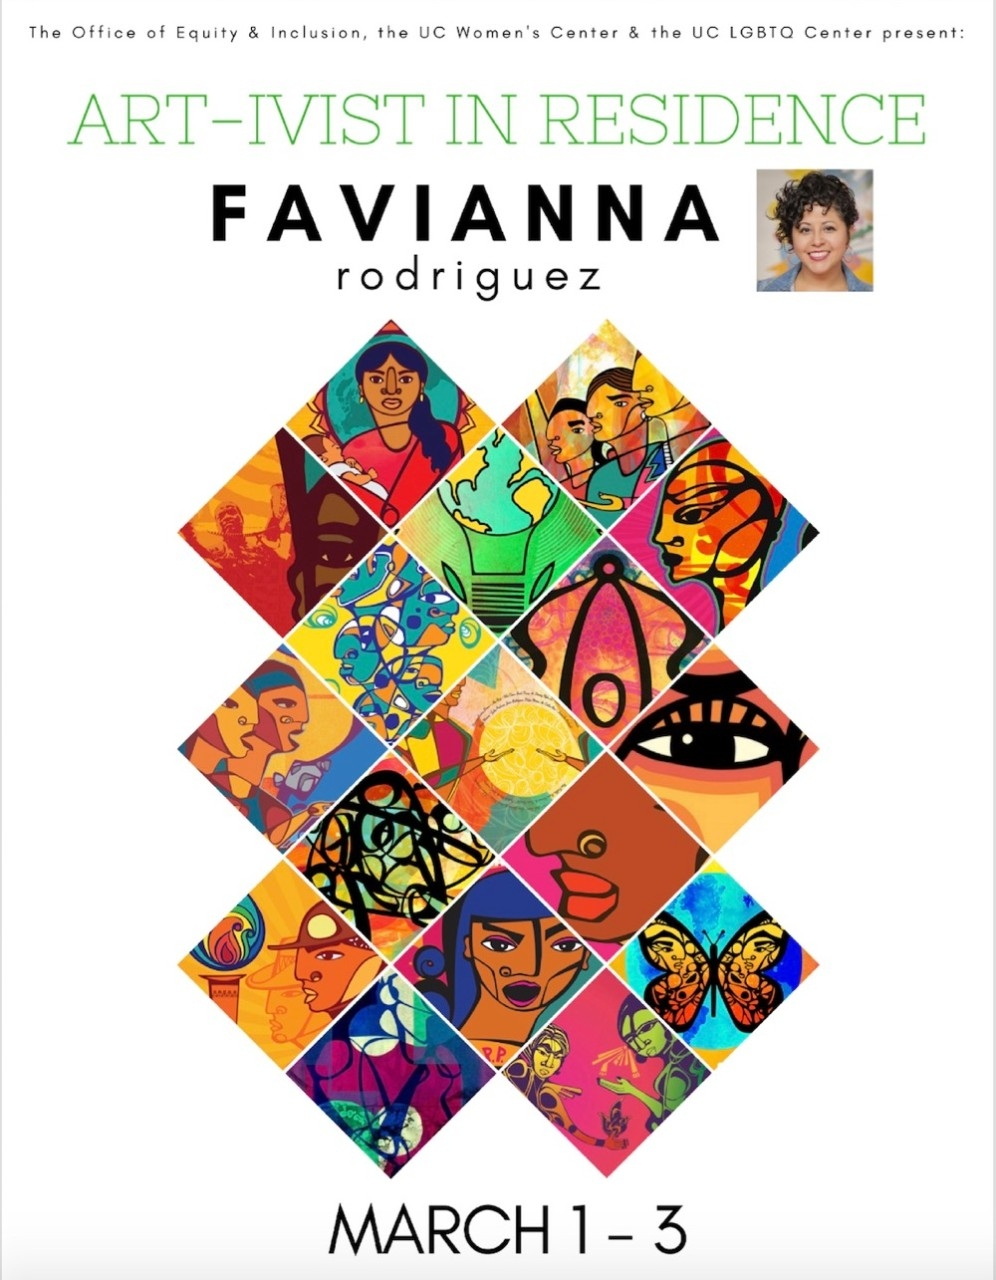 Poster promoting Favianna Rodriguez, visiting artist for UC's Women's History Month events 2018